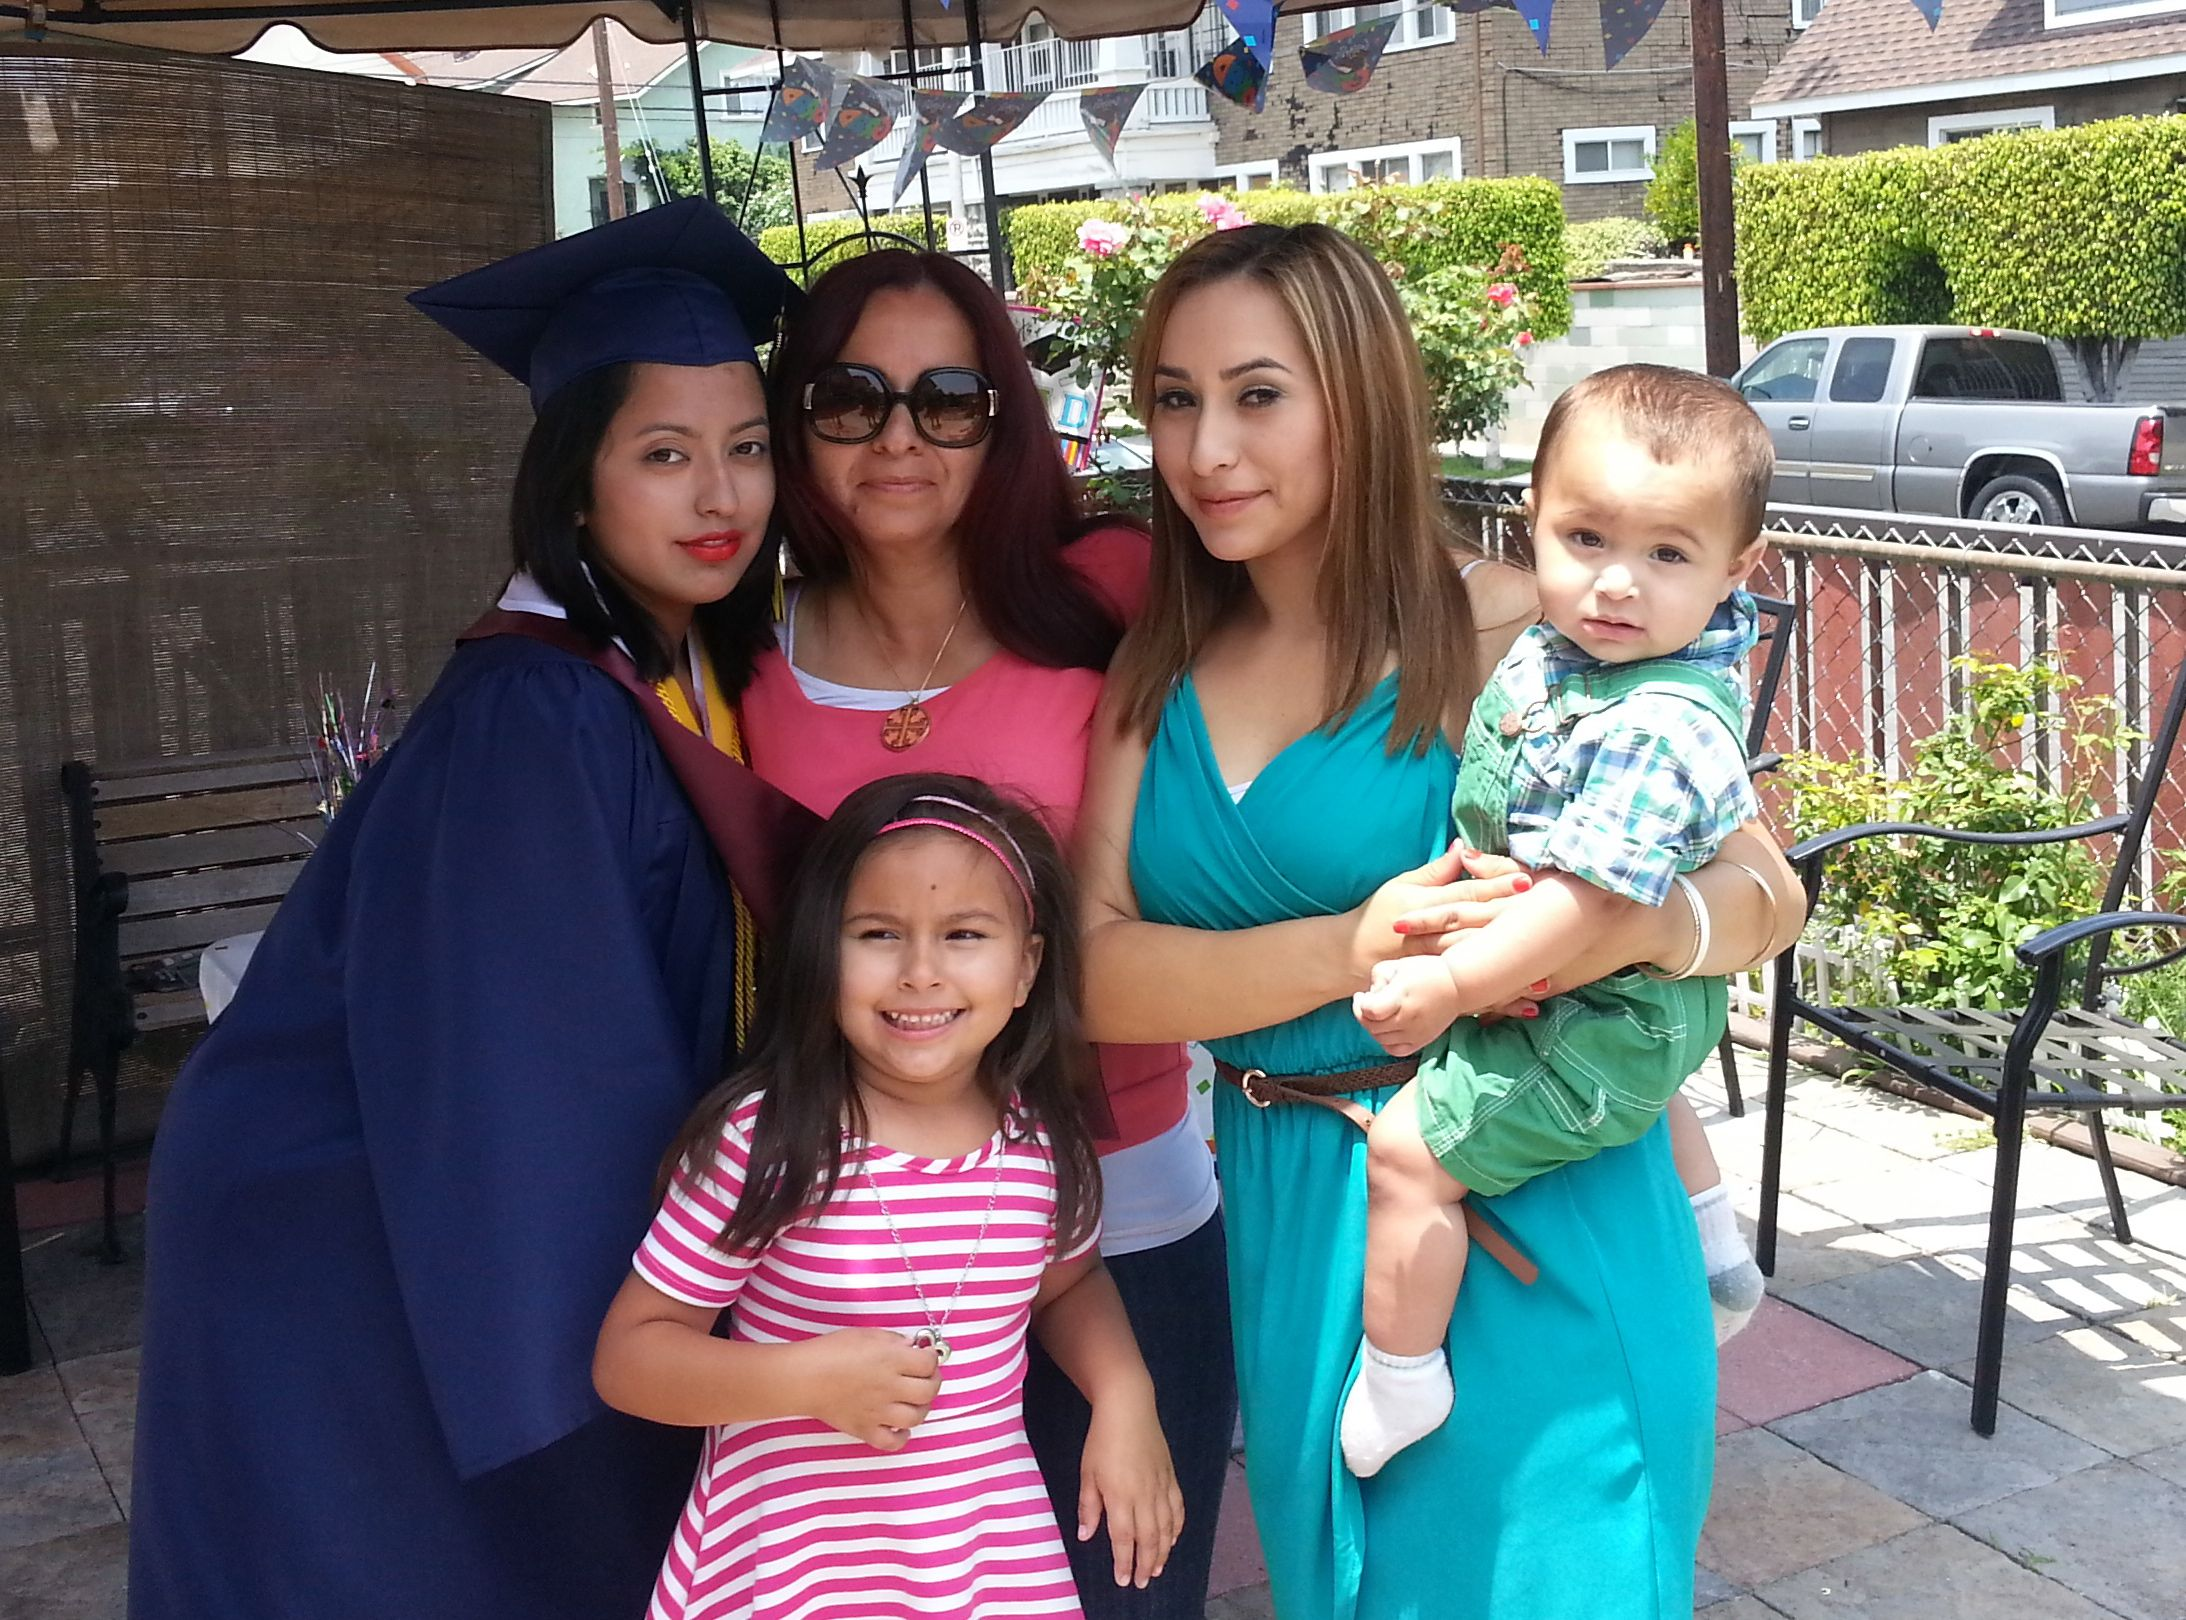 Ericka Oropeza on graduation day with her mother, Norma, her sister, Vanessa Cuenca and her nice and nephew. Photo courtesy of Ericka Oropeza